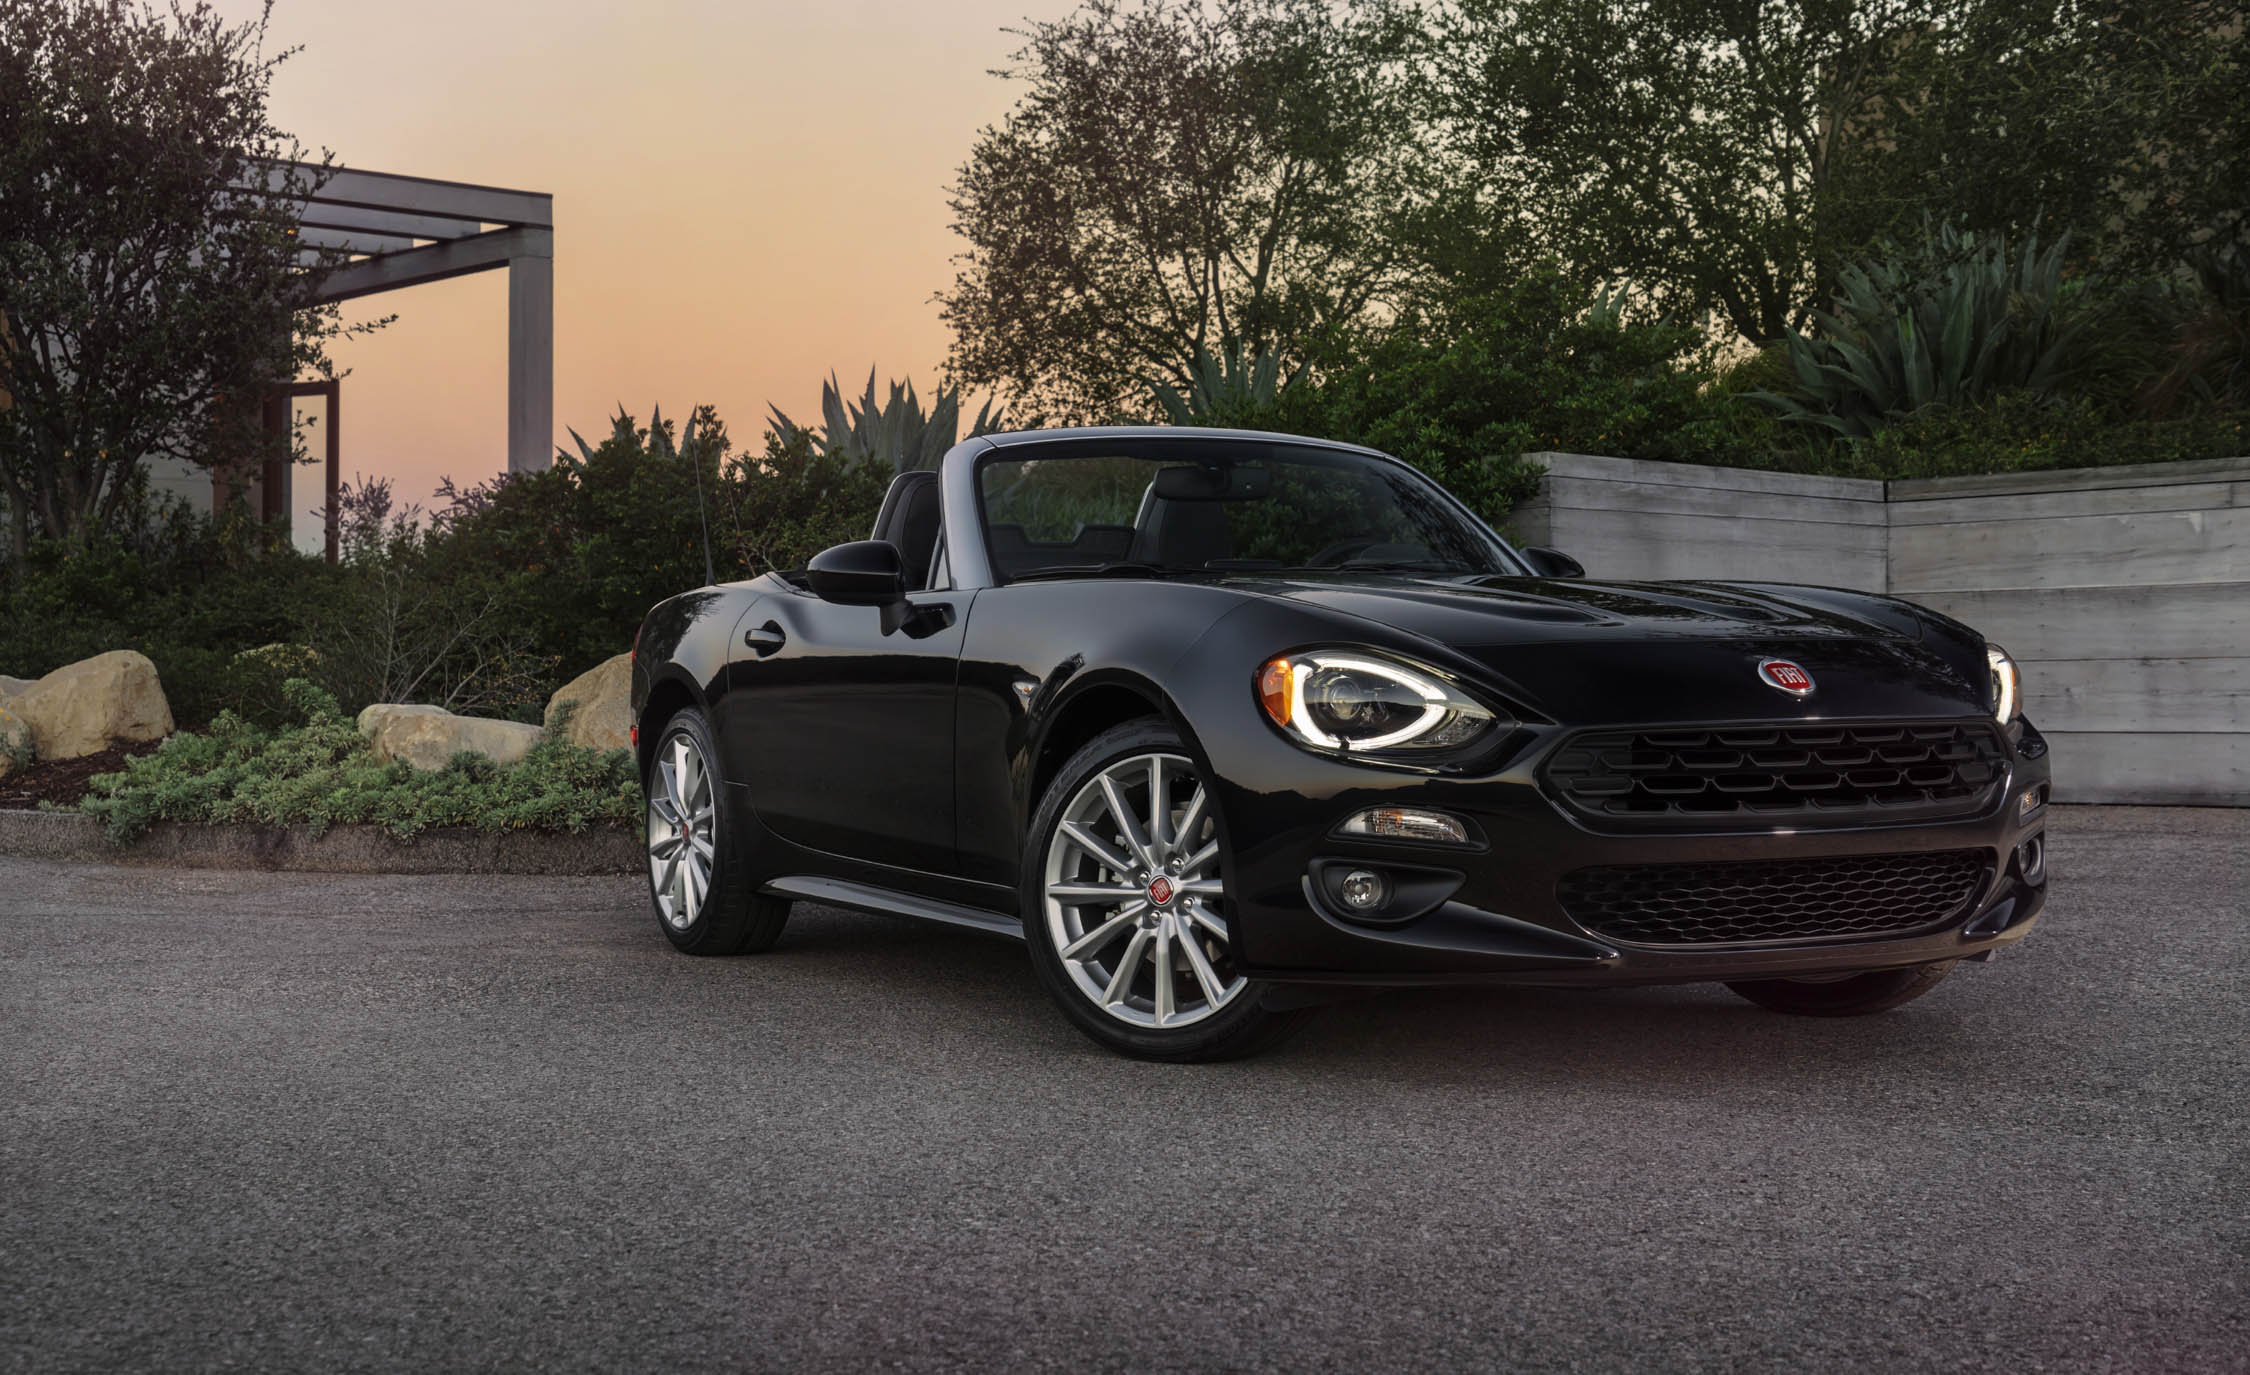 2017 Fiat 124 Spider Headlight On (View 6 of 23)